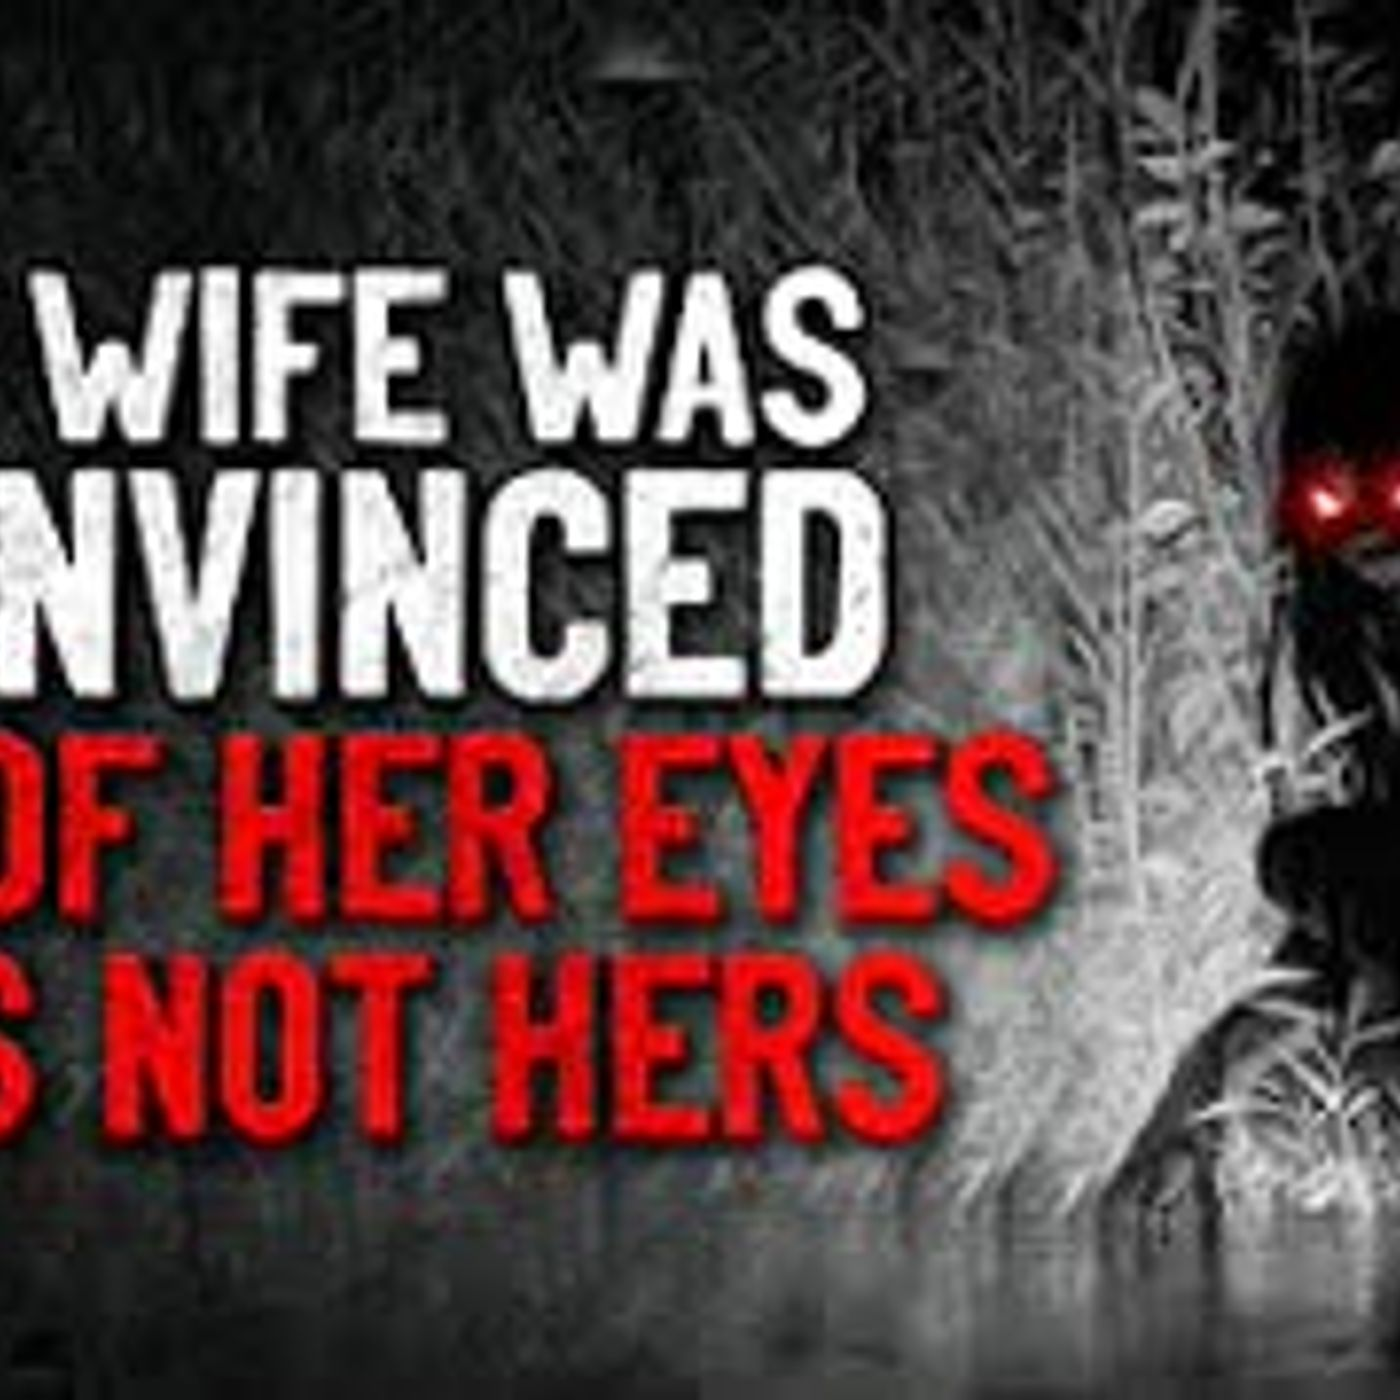 """""""My wife was convinced one of her eyes was not hers"""" Creepypasta"""